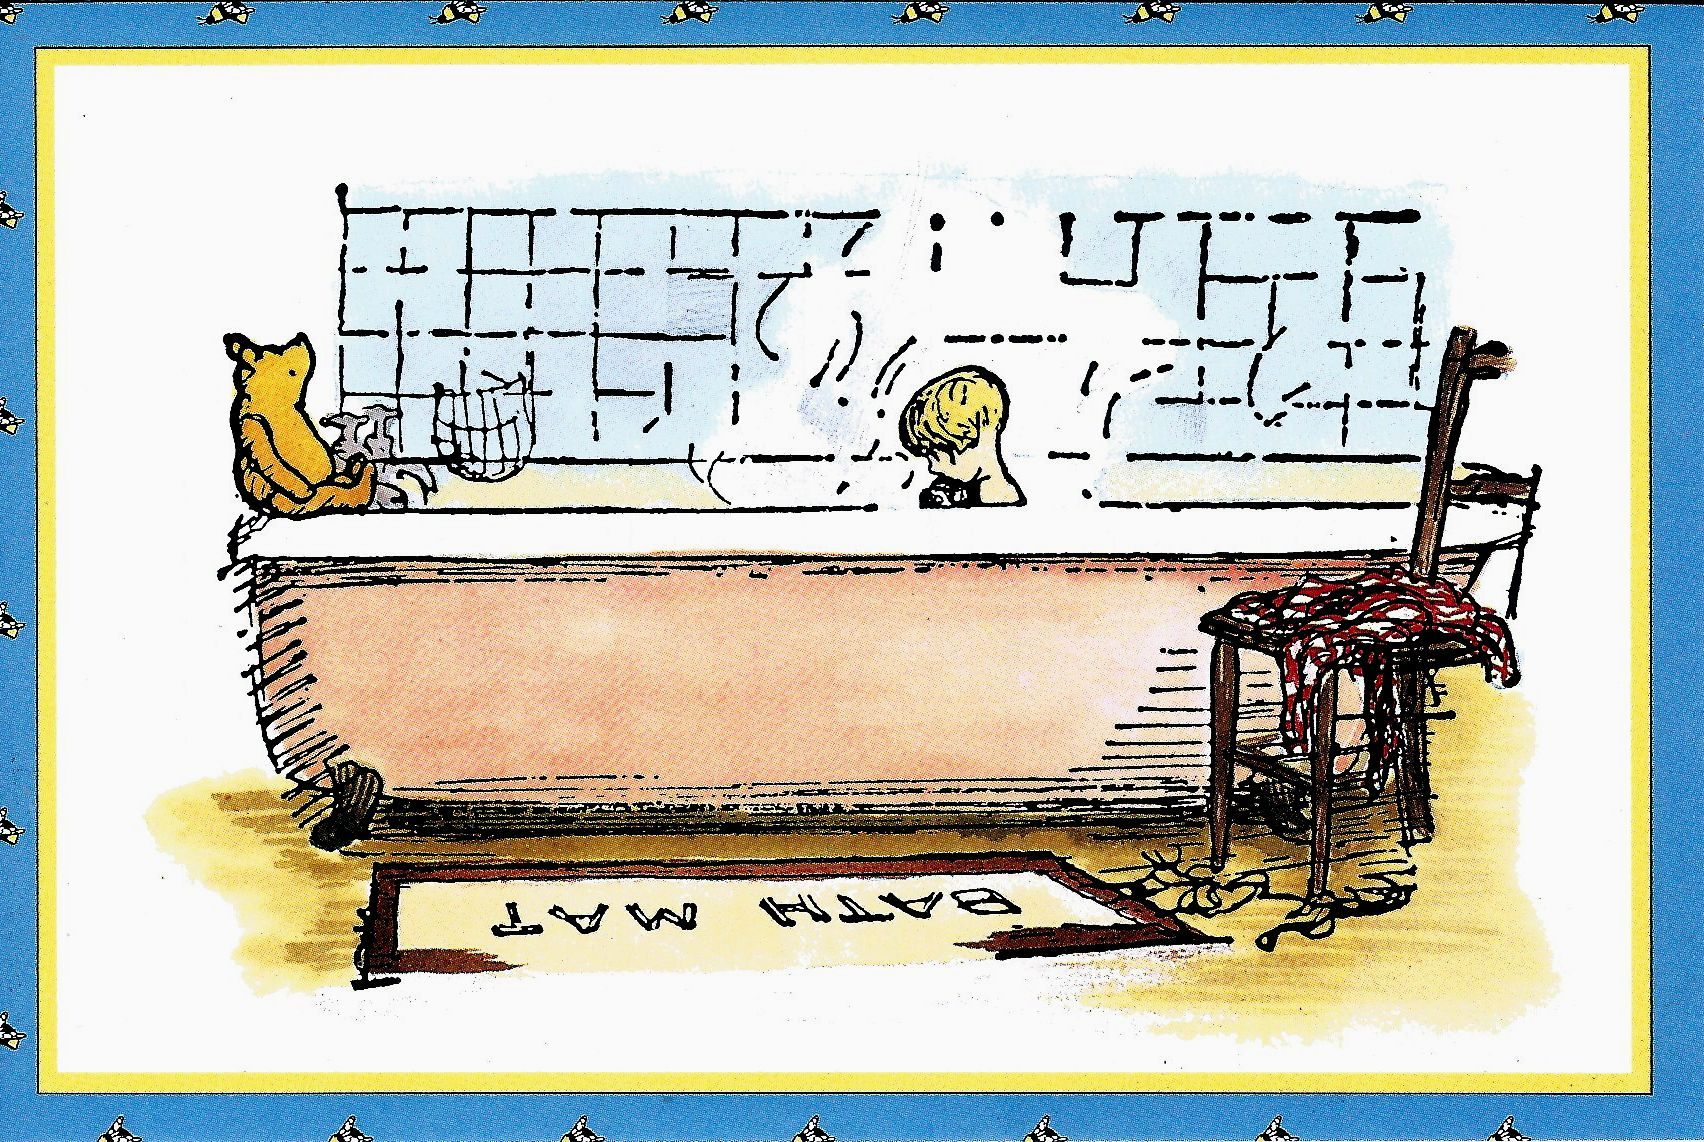 One day when Pooh Bear had nothing else to do, he thought he would do something, so he went round to Piglet's house to see what Piglet was doing. [The House On Pooh Corner, 1928]